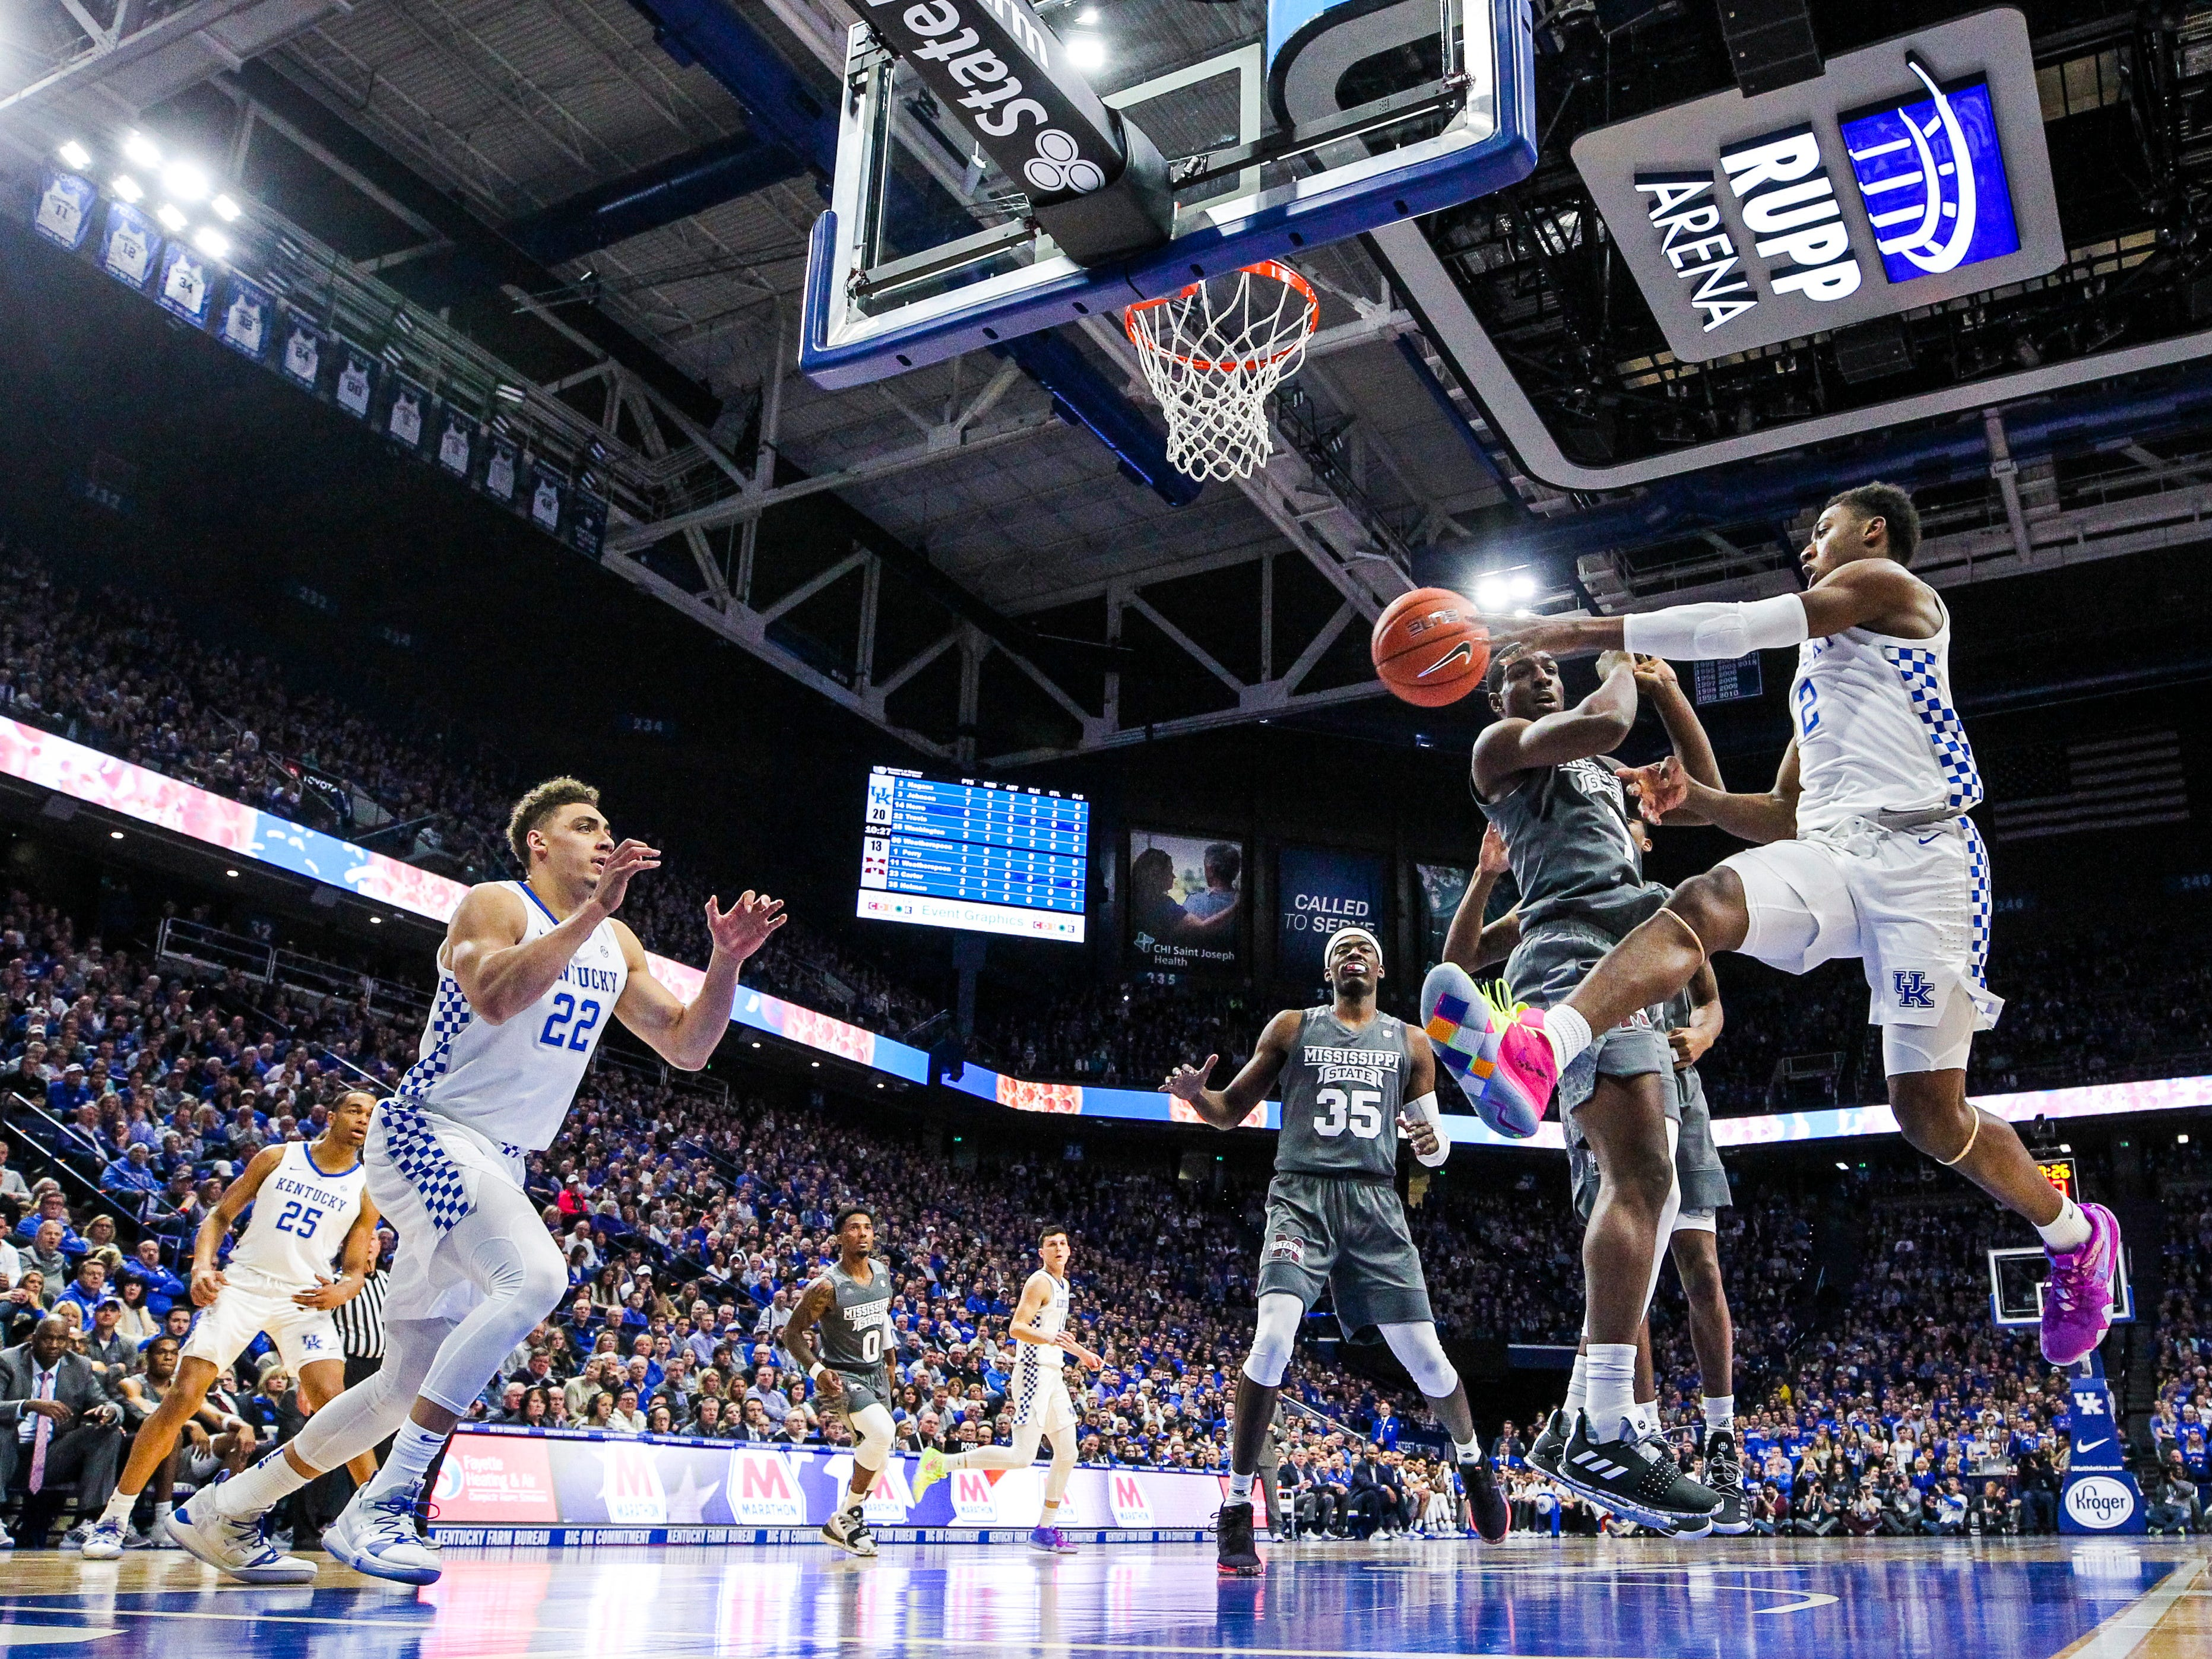 Kentucky's Ashton Hagans passes to Reid Travis around a Mississippi State defender  Tuesday night at Rupp Arena in Lexington. The Wildcats won 76-55, their first consecutive wins over ranked teams since 2011. January 22, 2019